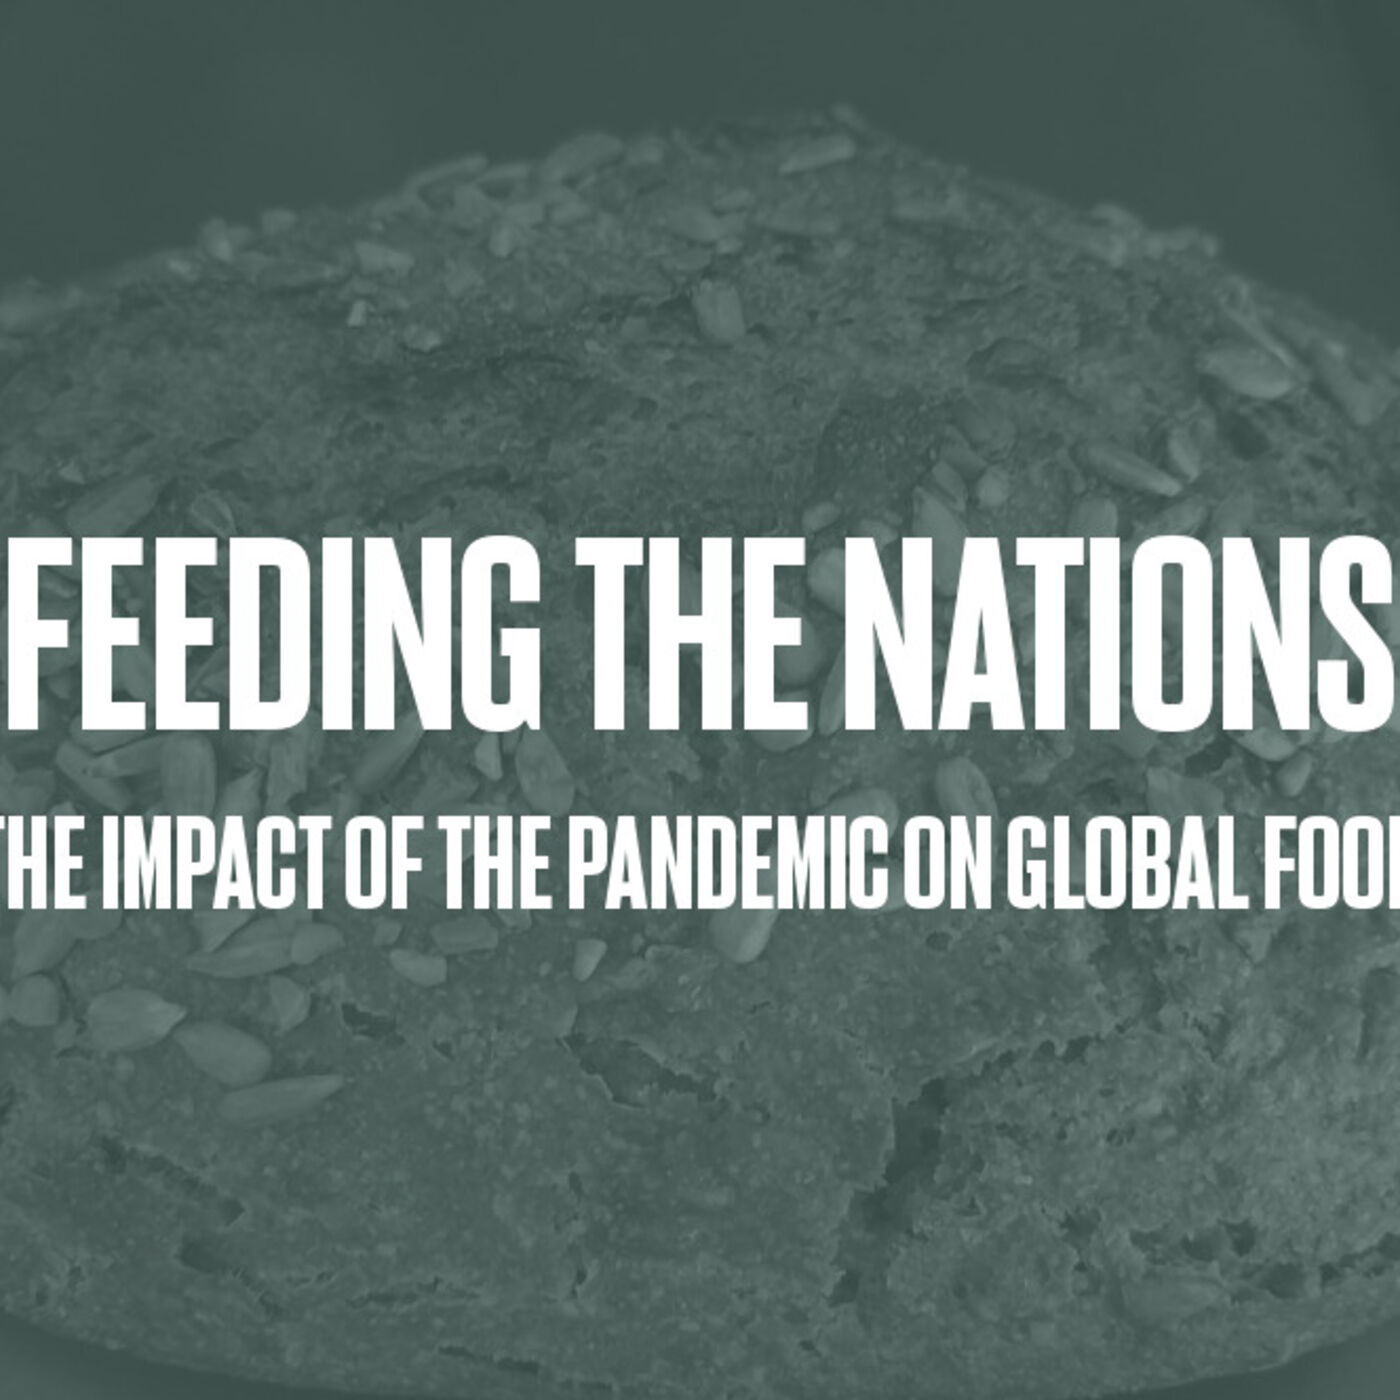 Episode #43 - Feeding the Nations